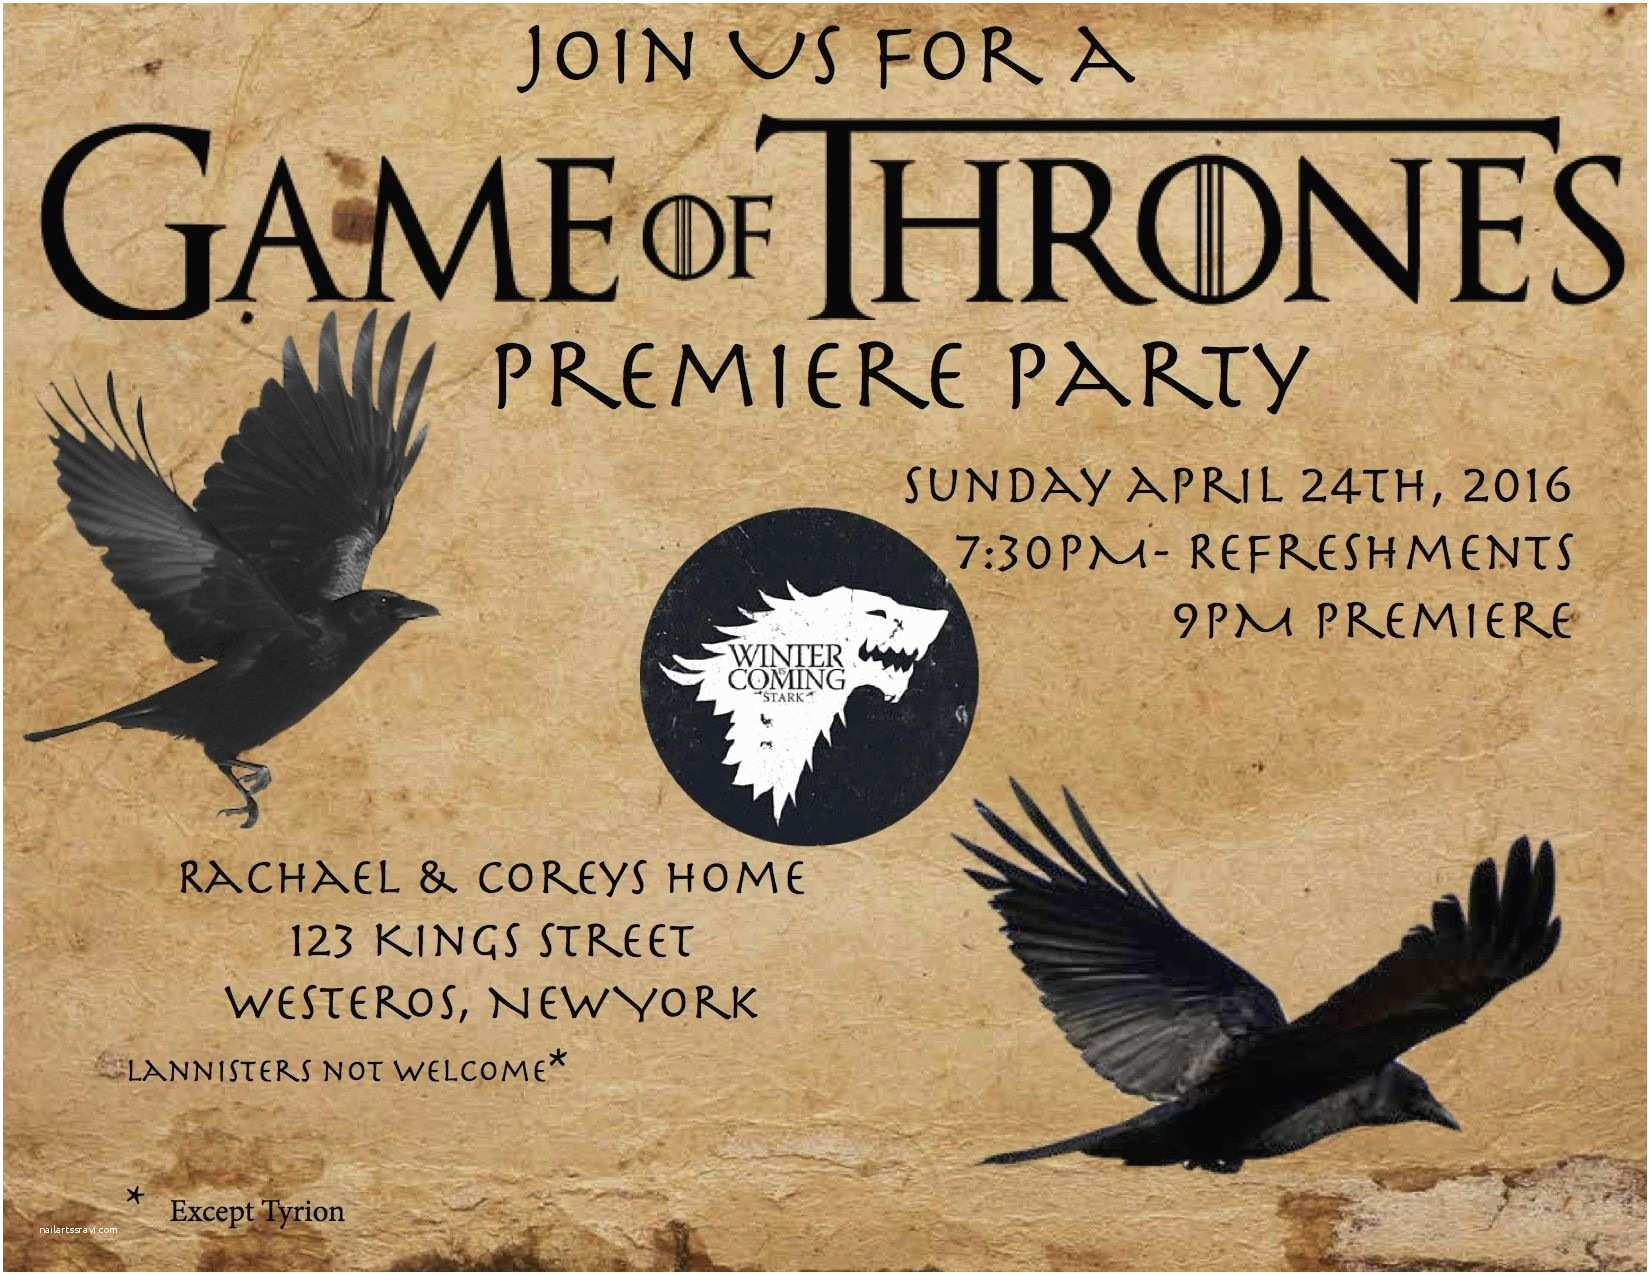 Game Of Thrones Party Invitation Game Of Thrones Premiere Party Invitation Inspiration I